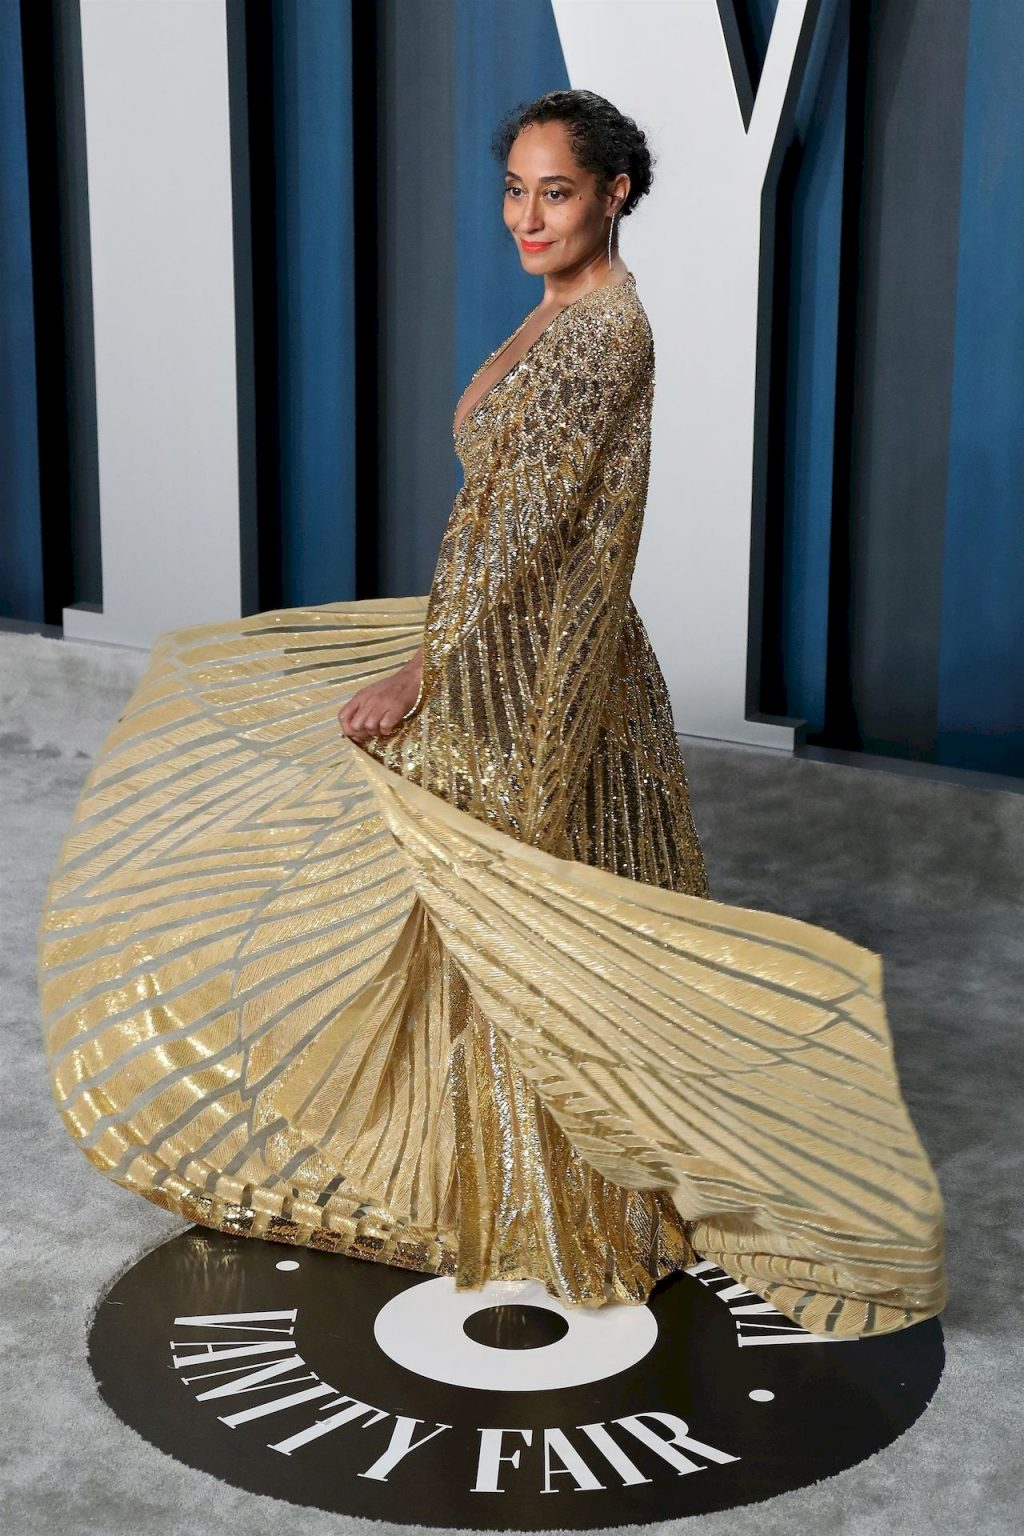 Tracee Ellis Ross Flaunts Her Deep Cleavage at the 2020 Vanity Fair Oscar Party (11 Photos)